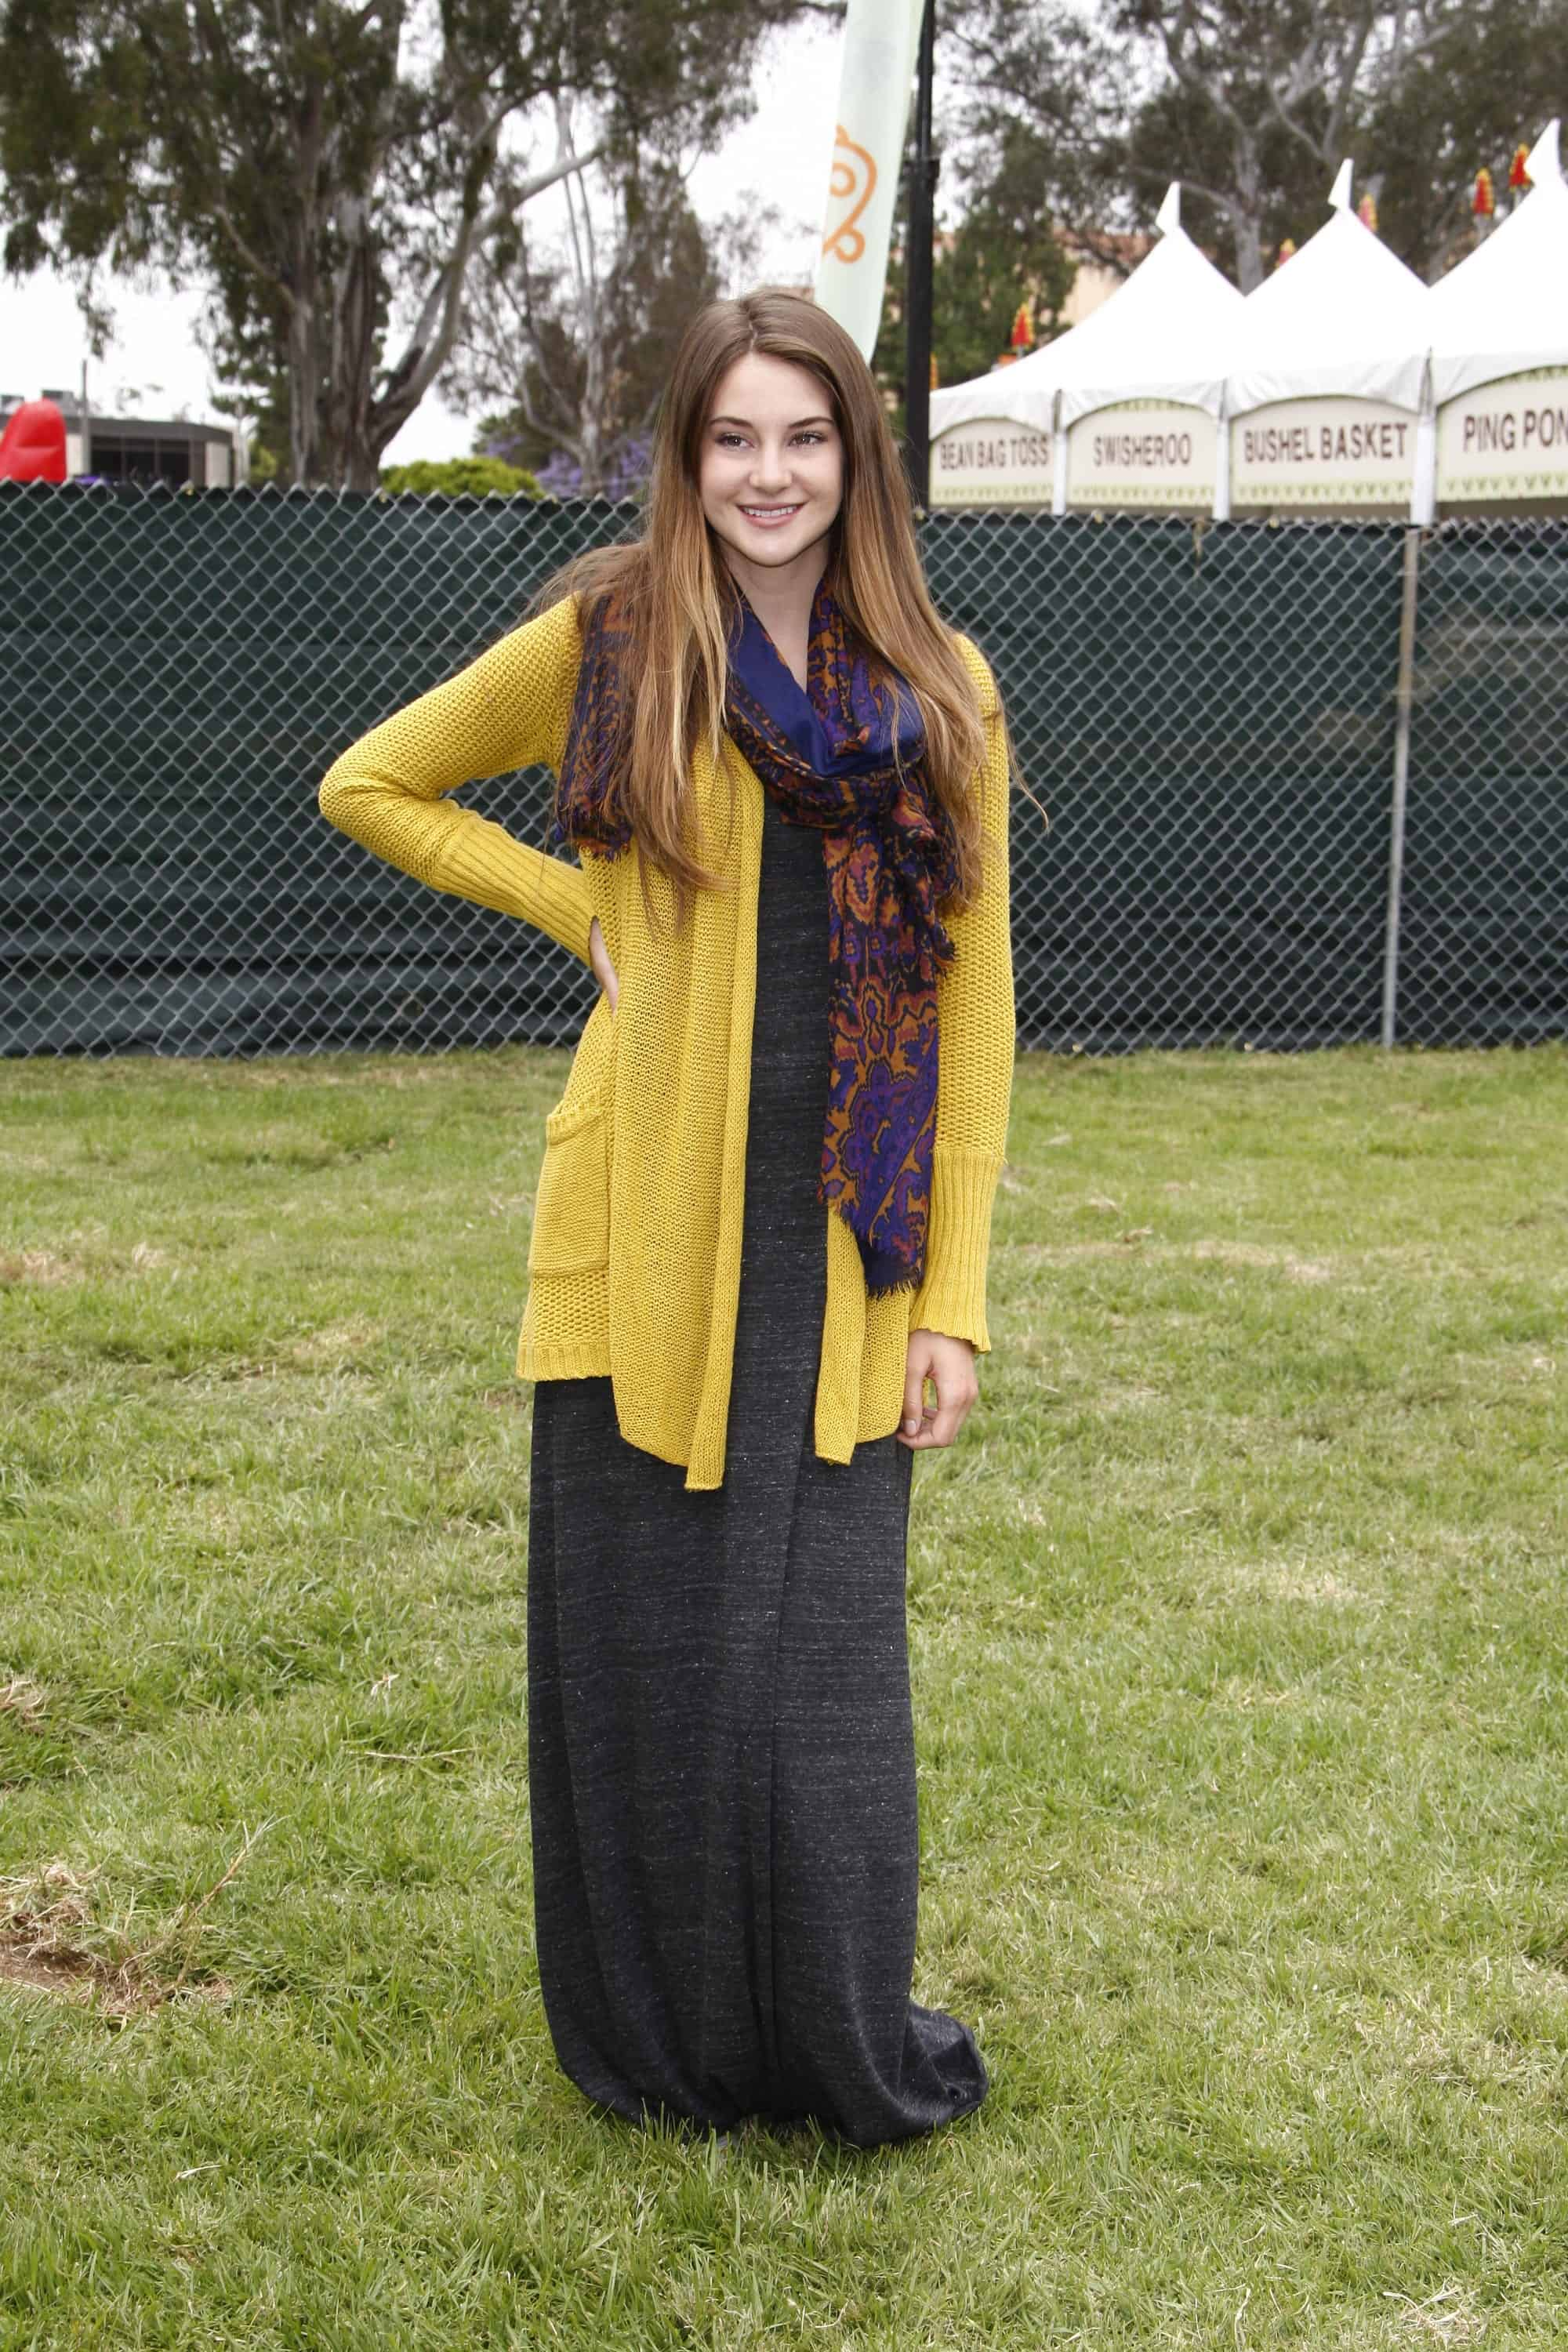 Shailene Woodley was at the 22nd Annual 'Time for Heroes' Celebrity Picnic at Wadsworth Theater on June 12, 2011 in Westwood, CA. She wore a yellow cardigan and a colorful scarf with her long and loose tousled brunette hairstyle that has highlights.